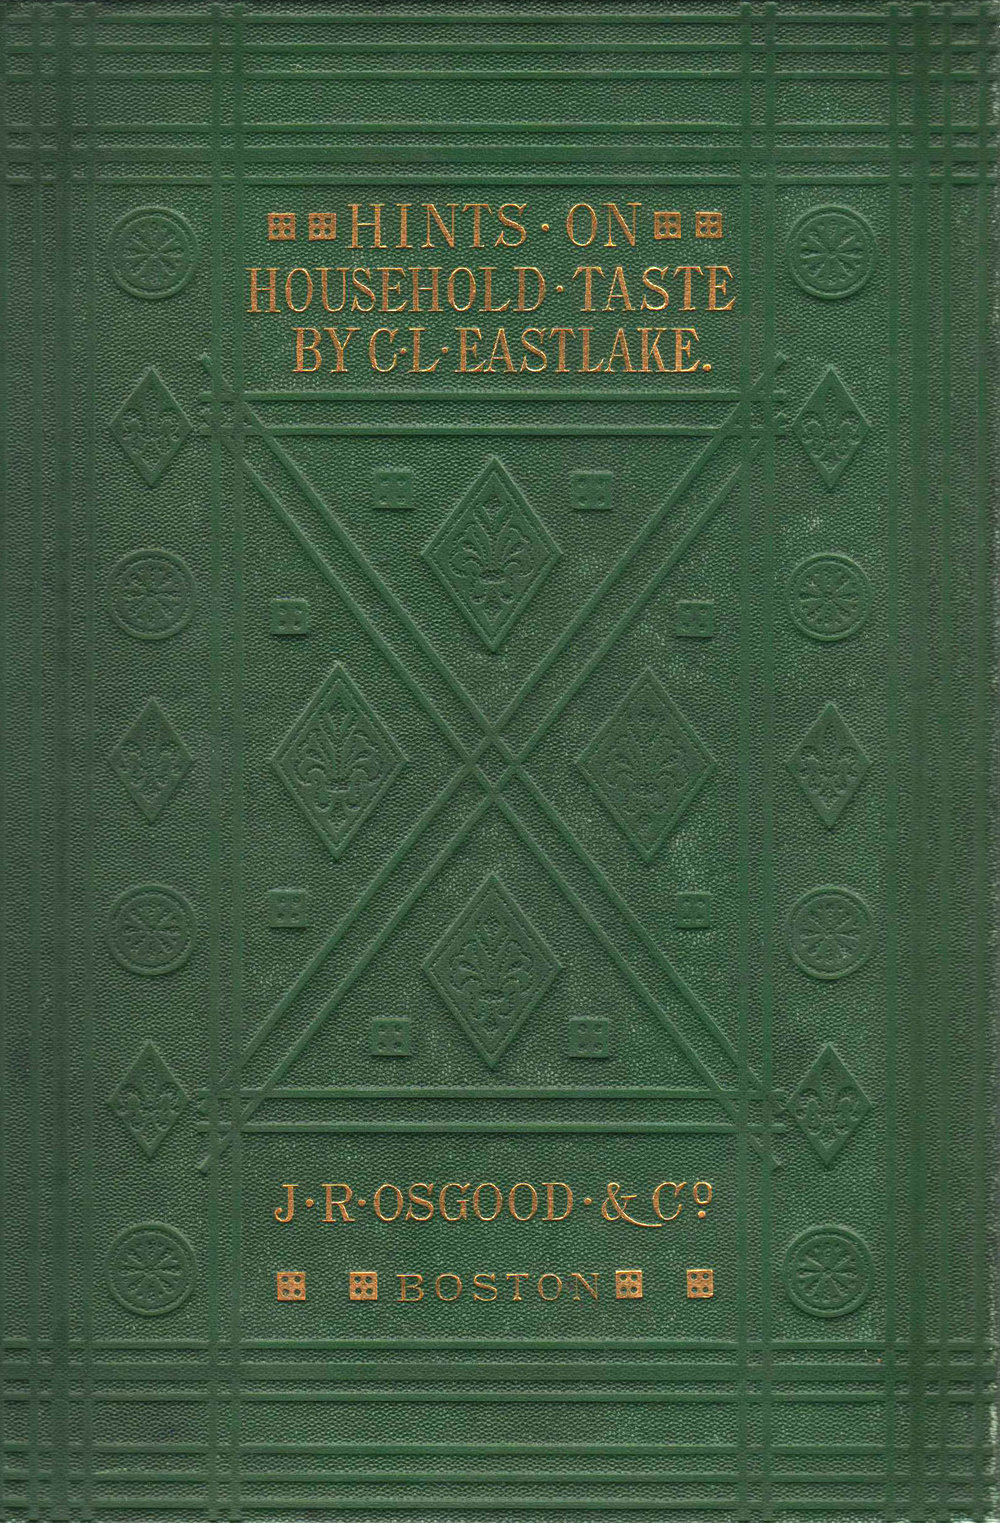 2018-04 Hints on Household Taste.jpg